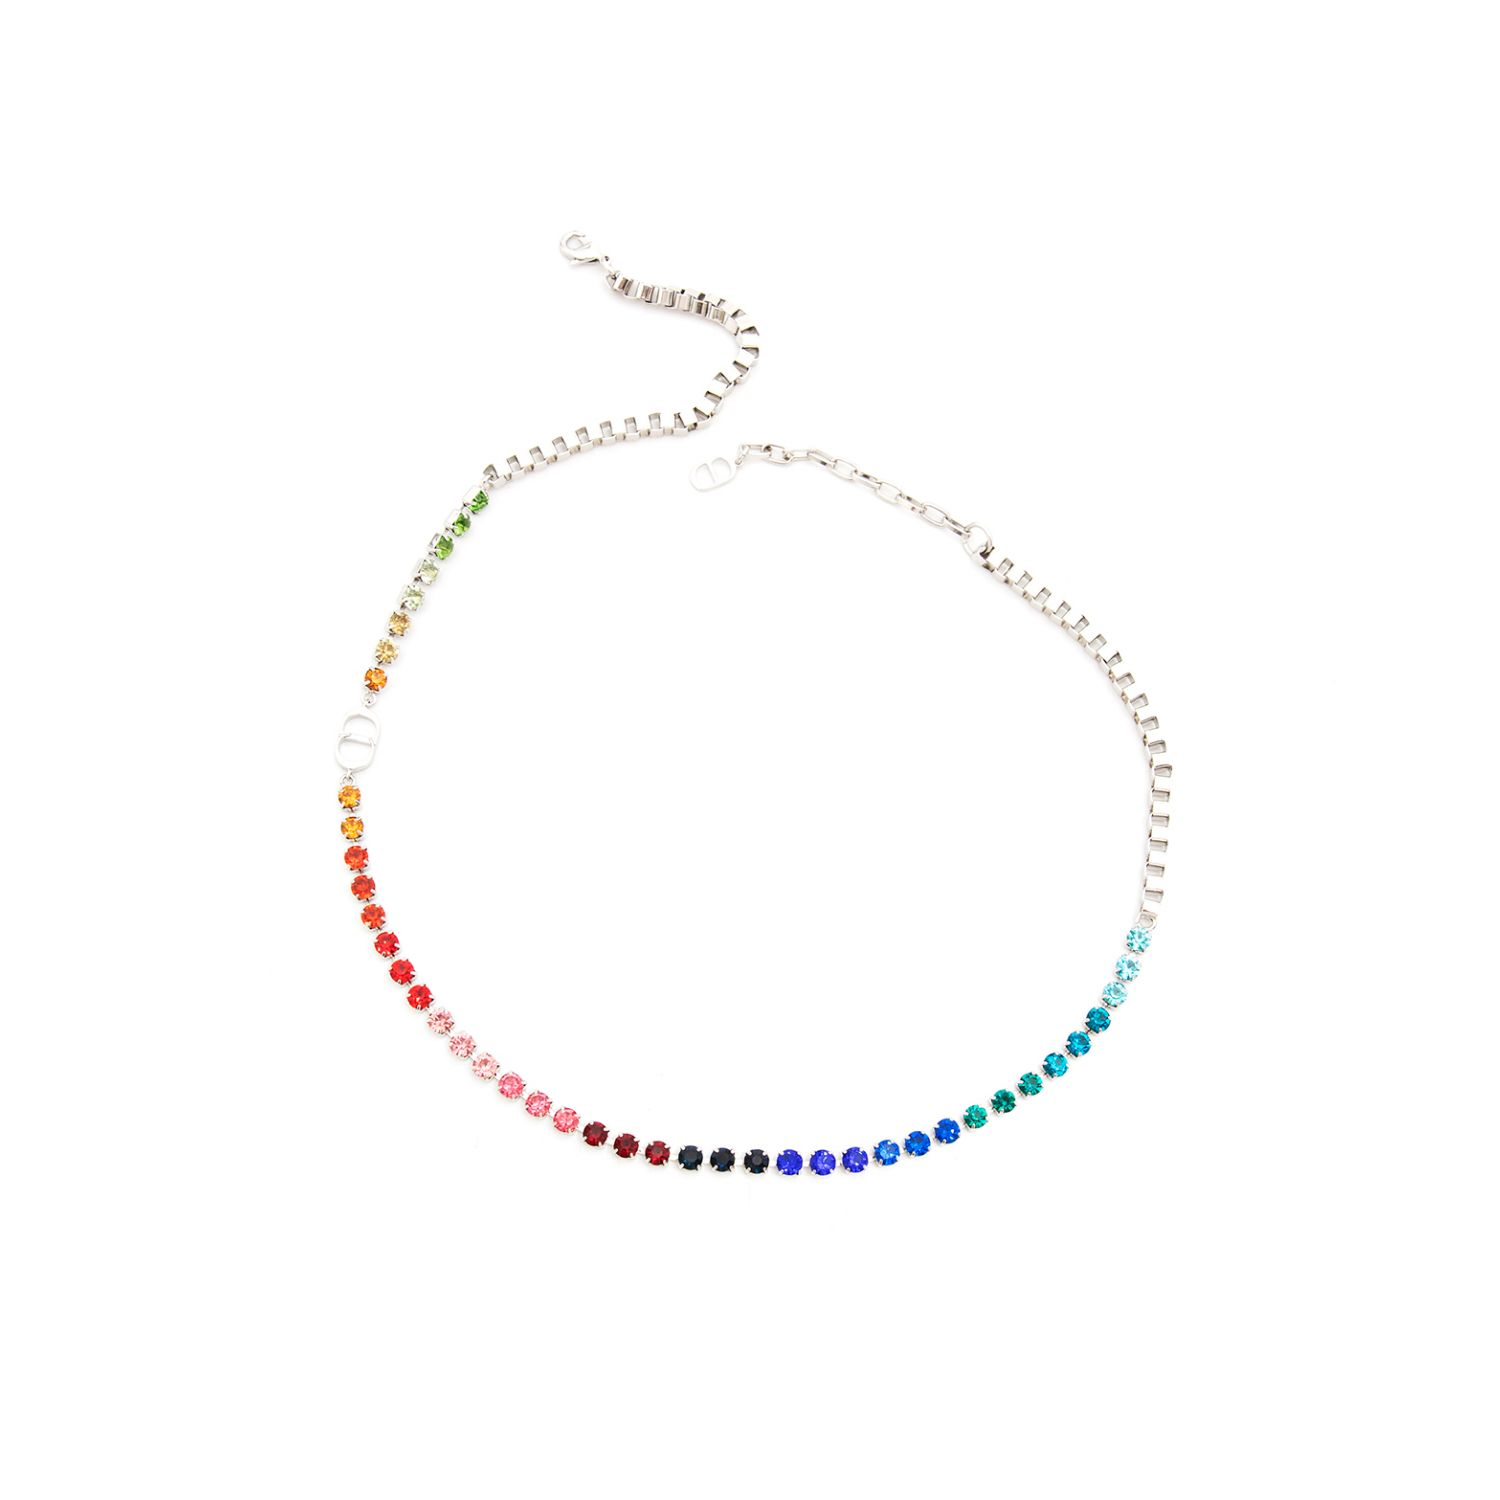 Fashion jewelry CD men's and women's necklaces chain colorful crystal splicing Bracelet Festival gift